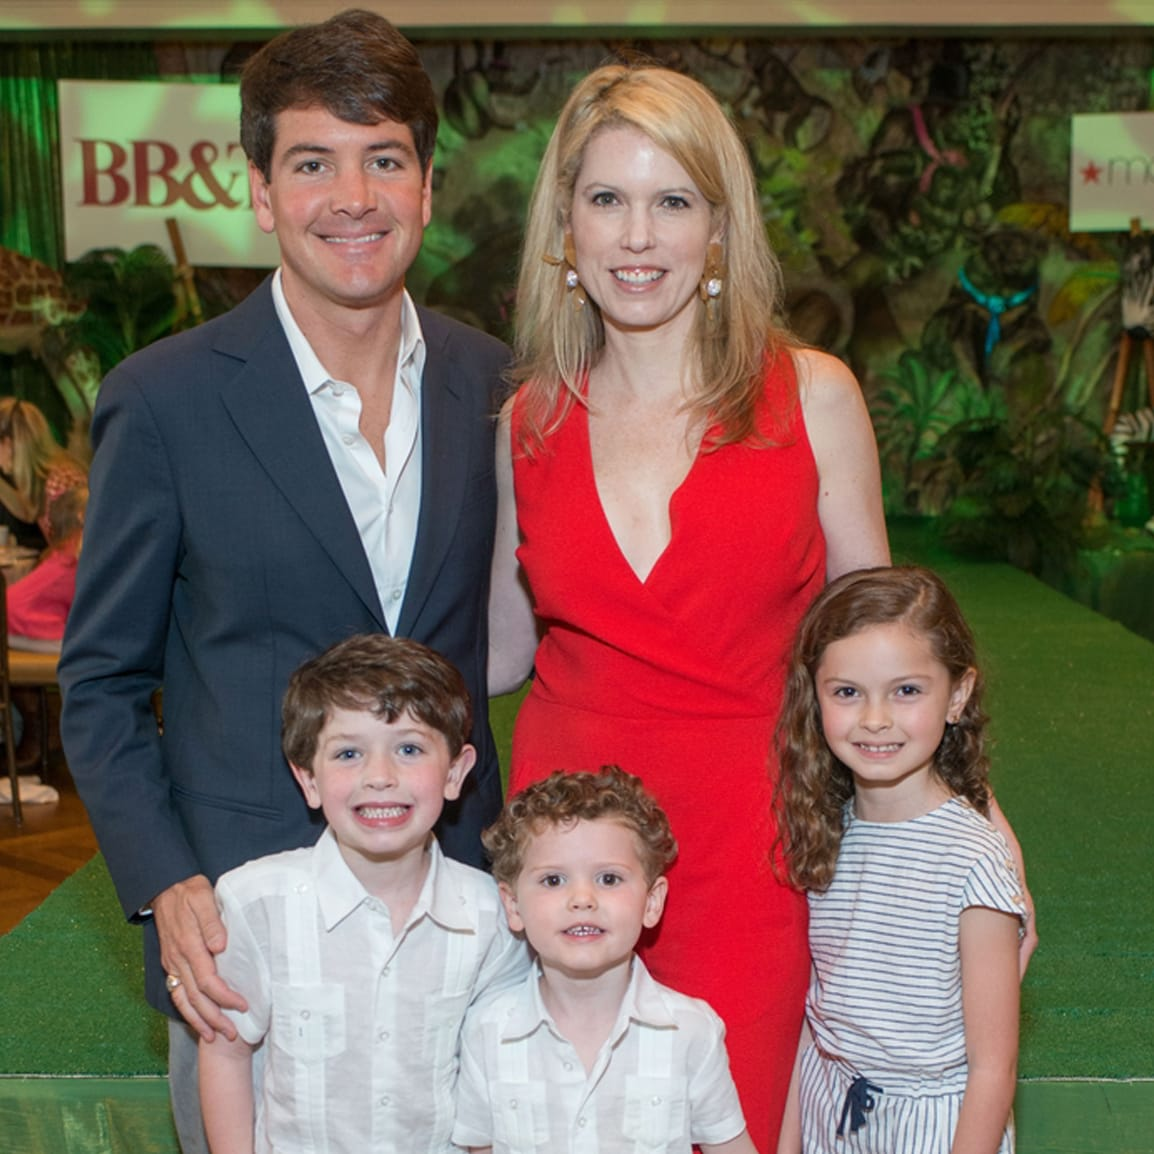 Houston Symphony Children's Fashion Show, March 2016, Bill Toomey, Courtney Toomey, Billy, Hayes, Callie